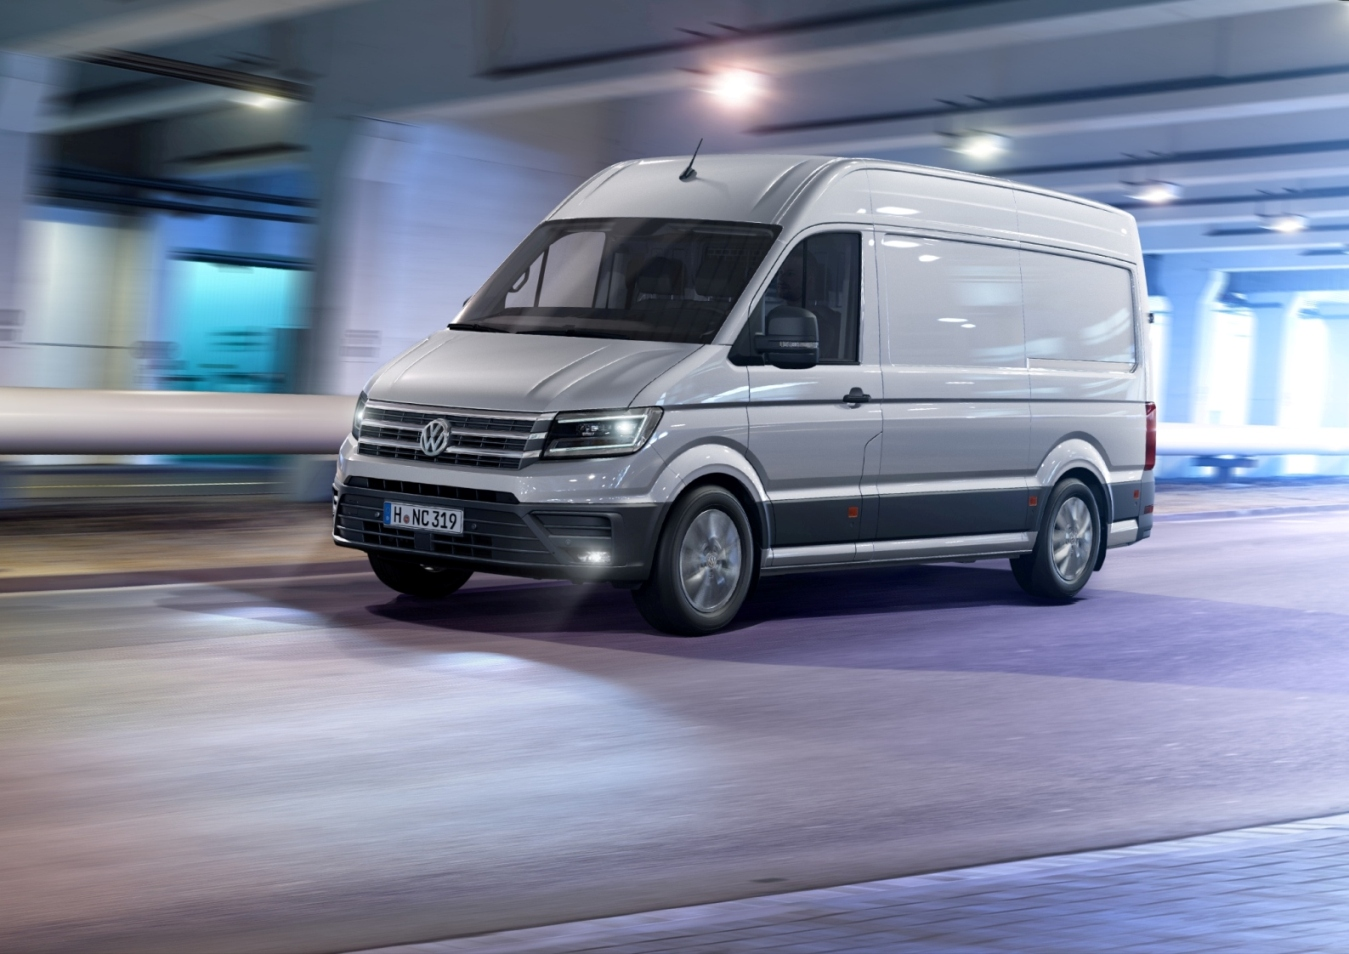 new 2017 volkswagen crafter debuts with fwd option us. Black Bedroom Furniture Sets. Home Design Ideas